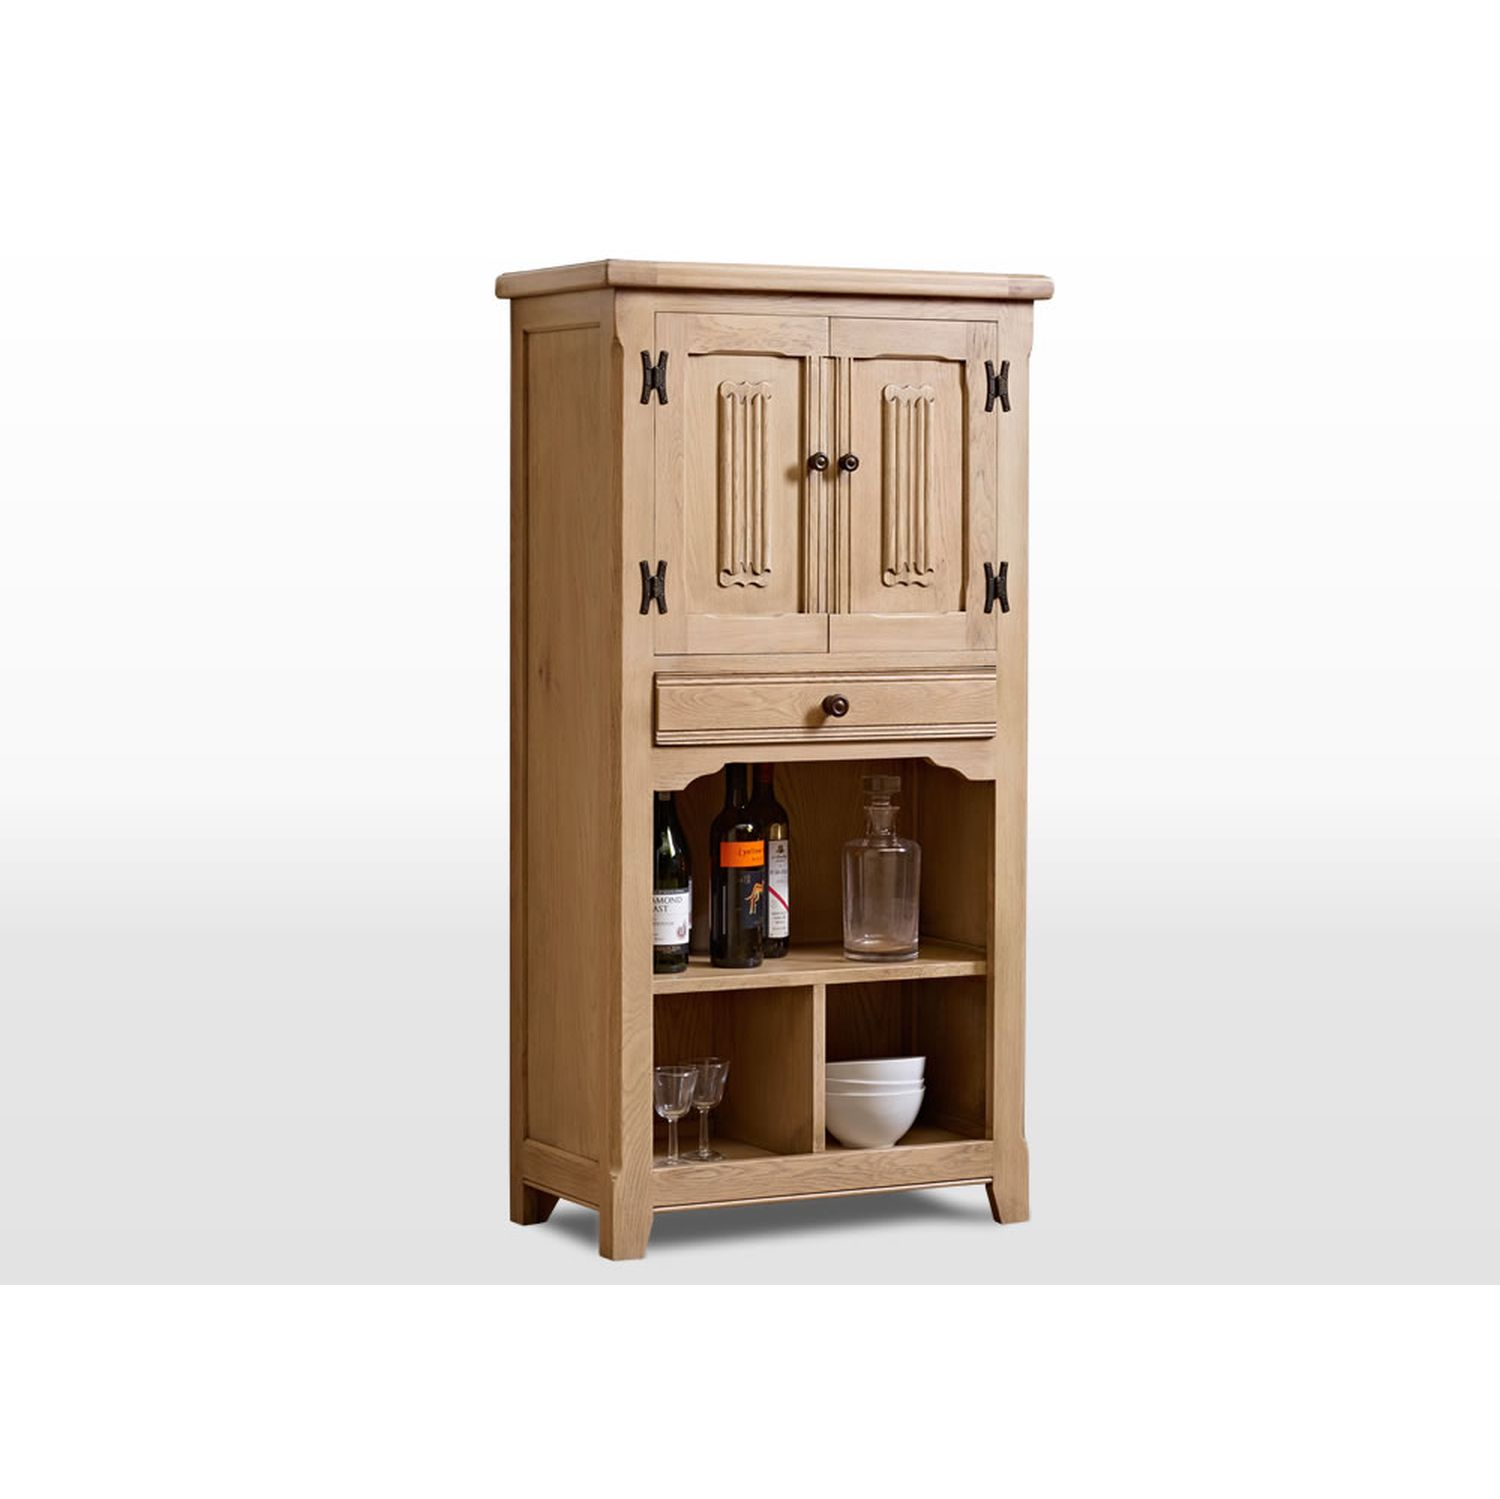 Image of Old Charm Drinks Cabinet